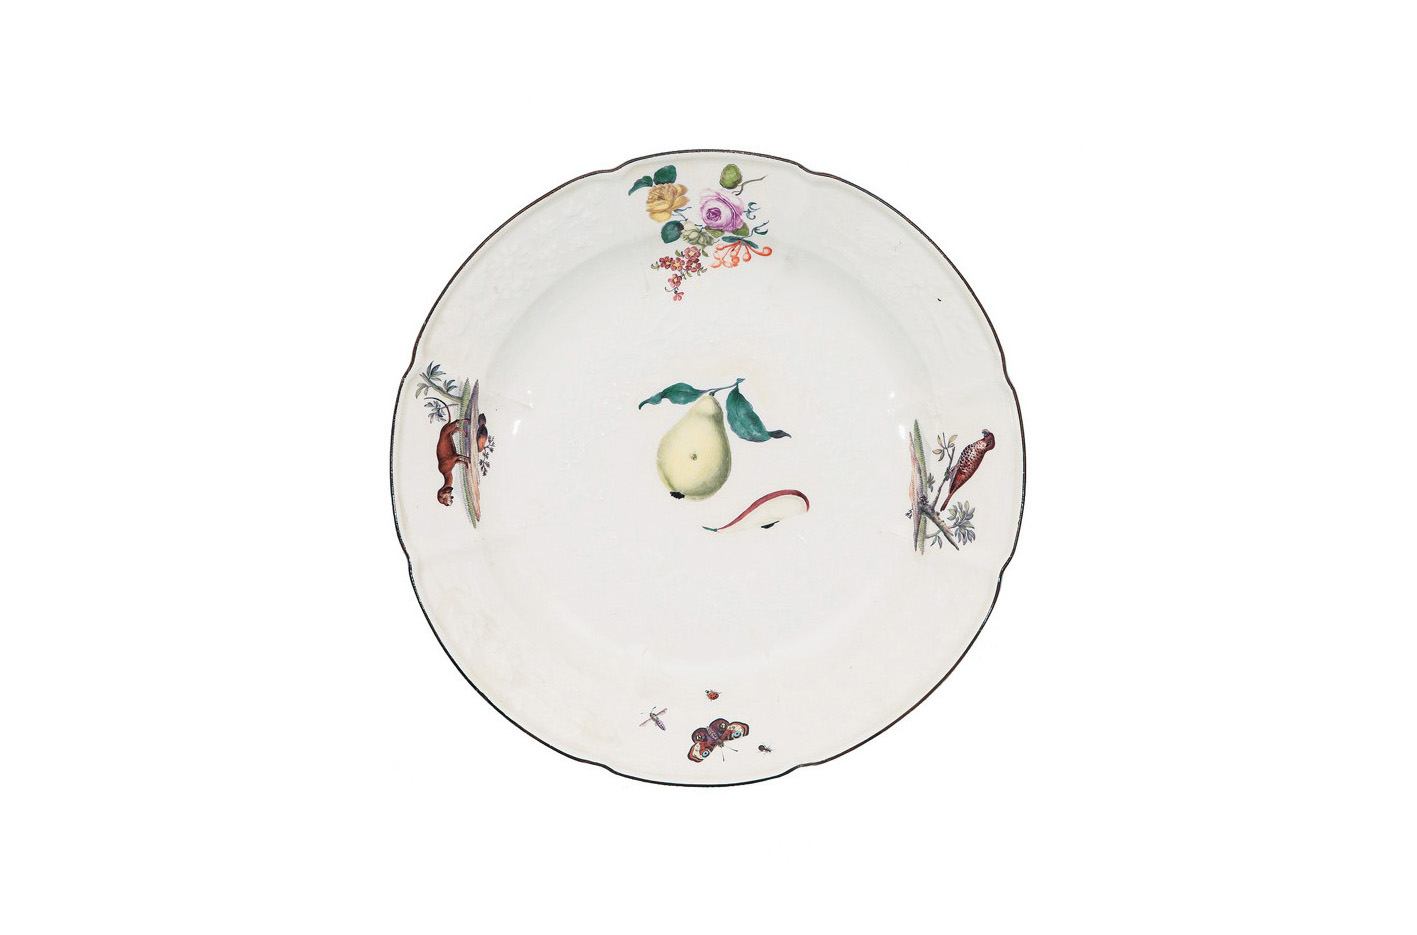 A large 'Gotzkowsky' plate with animal paintings